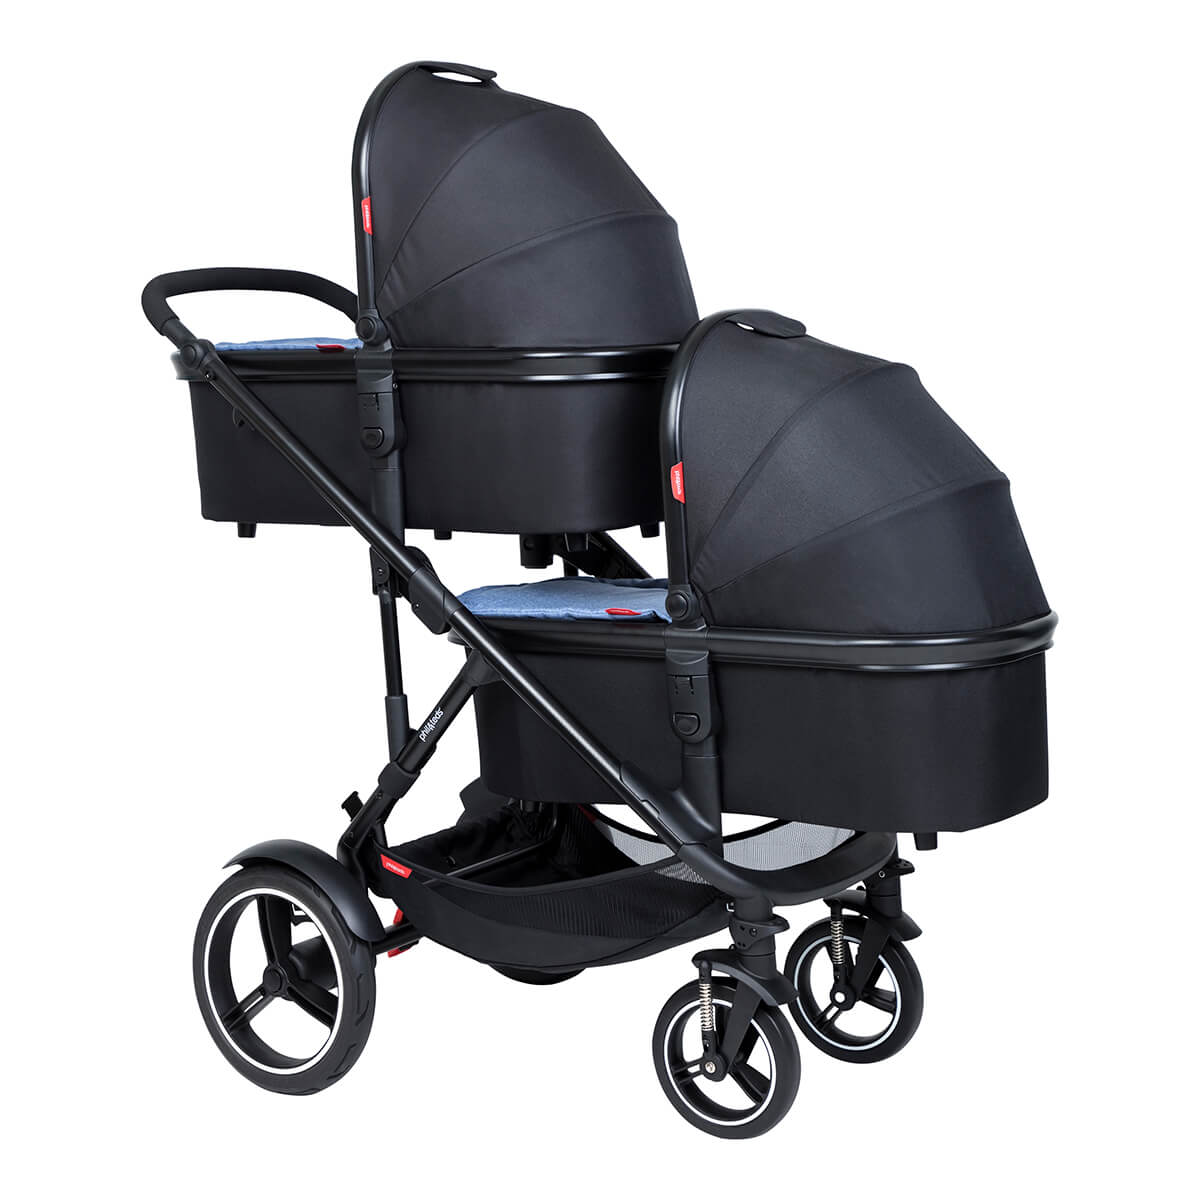 https://cdn.accentuate.io/4509528916056/19272668414040/philteds-voyager-inline-buggy-with-double-snug-carrycots-v1626484606858.jpg?1200x1200